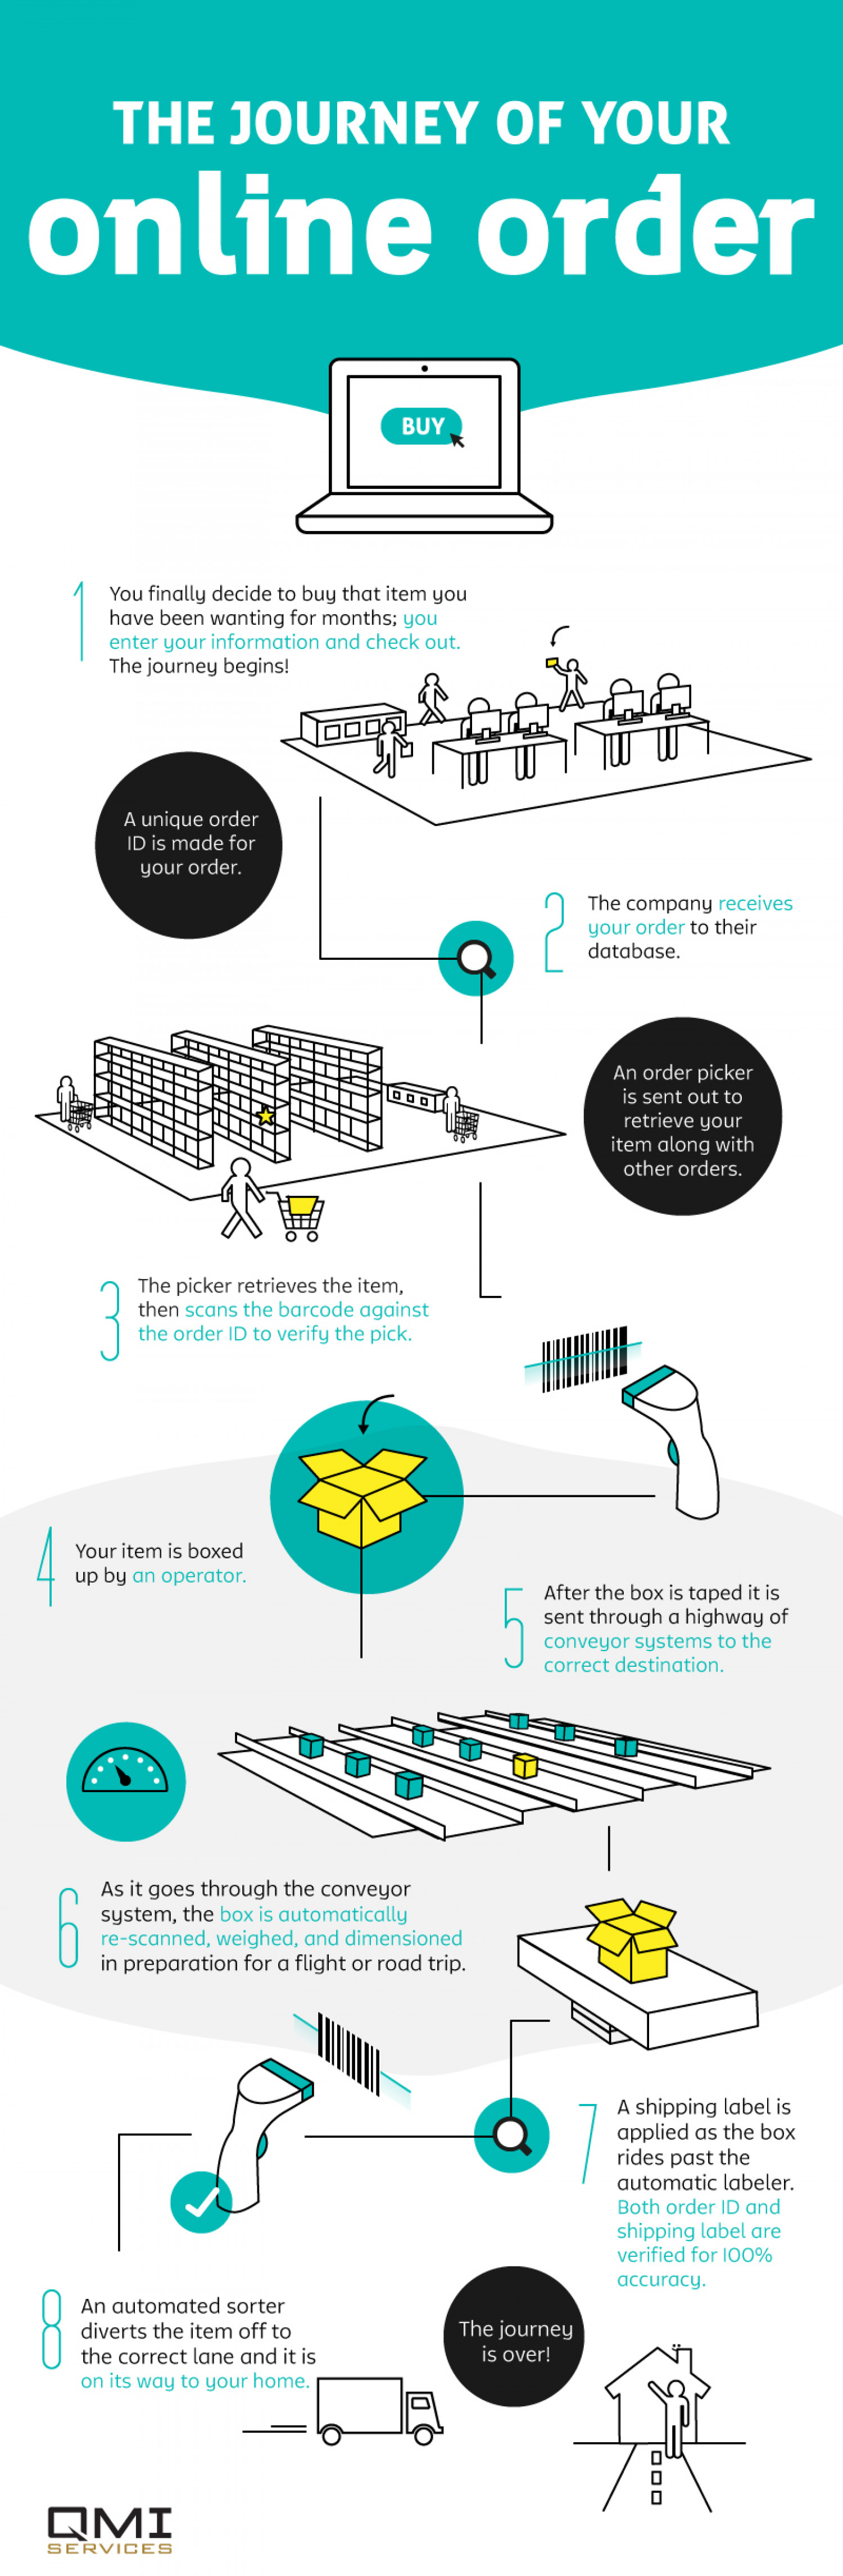 The Journey of Your Online Order Infographic